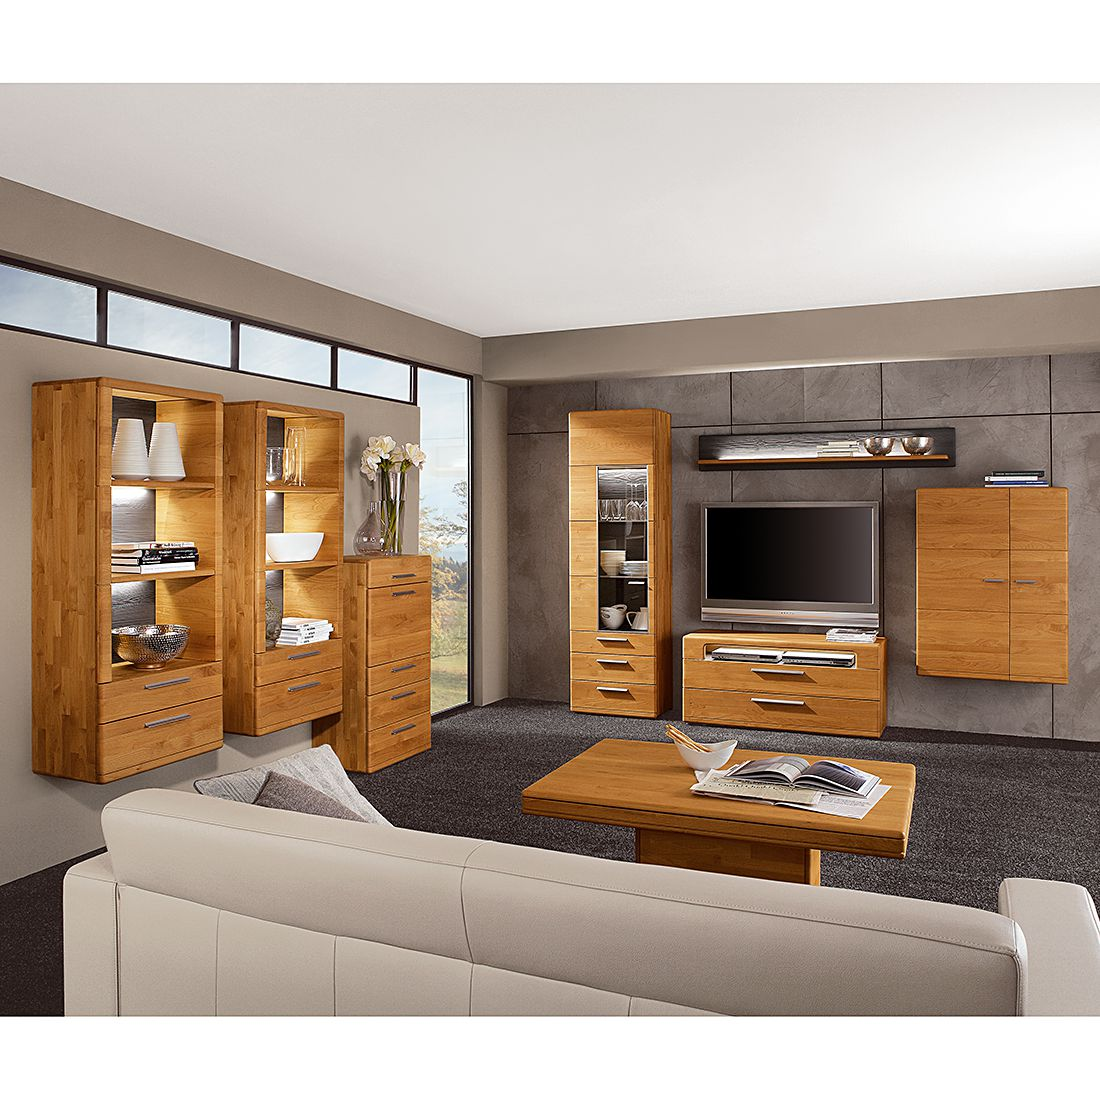 h ngeschrank optima ii erle massiv hartmann kaufen. Black Bedroom Furniture Sets. Home Design Ideas